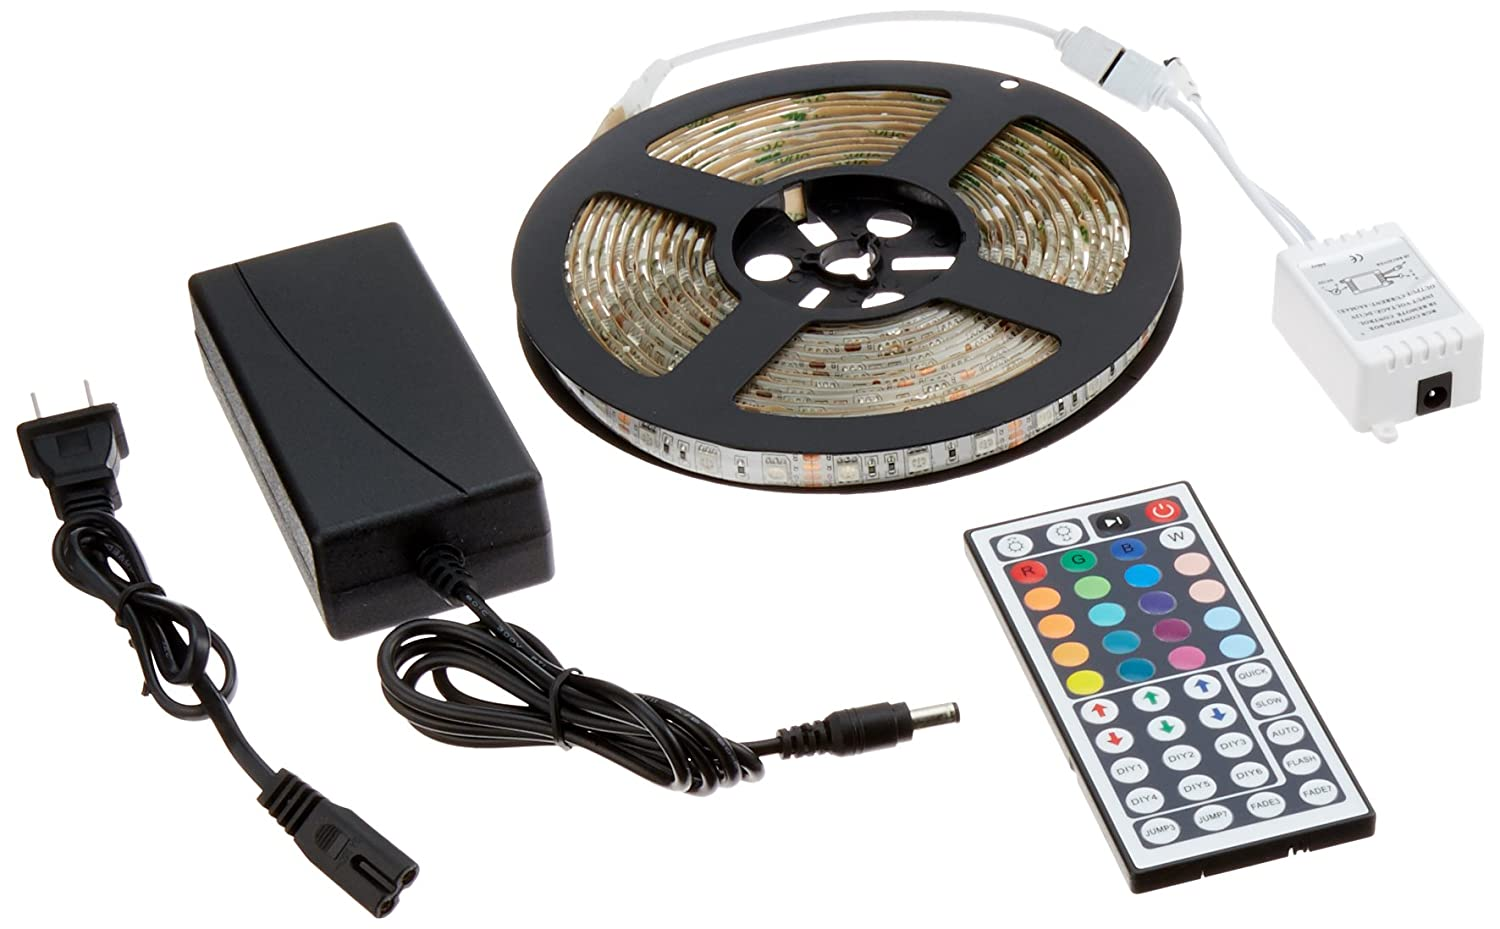 Amazon adx 164ft waterproof flexible strip light kit 300 amazon adx 164ft waterproof flexible strip light kit 300 color changing rgb leds w ir remote controller and 12v5a power supply home improvement aloadofball Choice Image